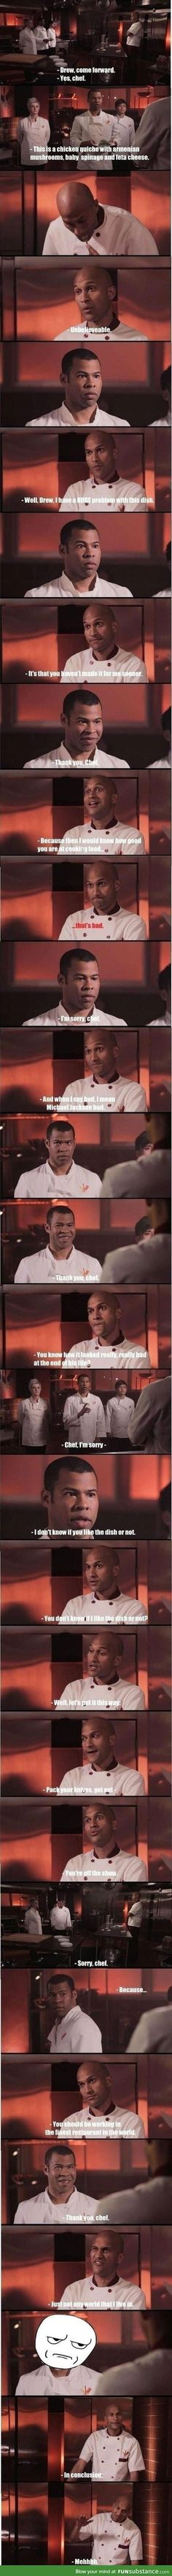 You guys should watch the whole video in Youtube. It's Key and Peele Hell's Kitchen.